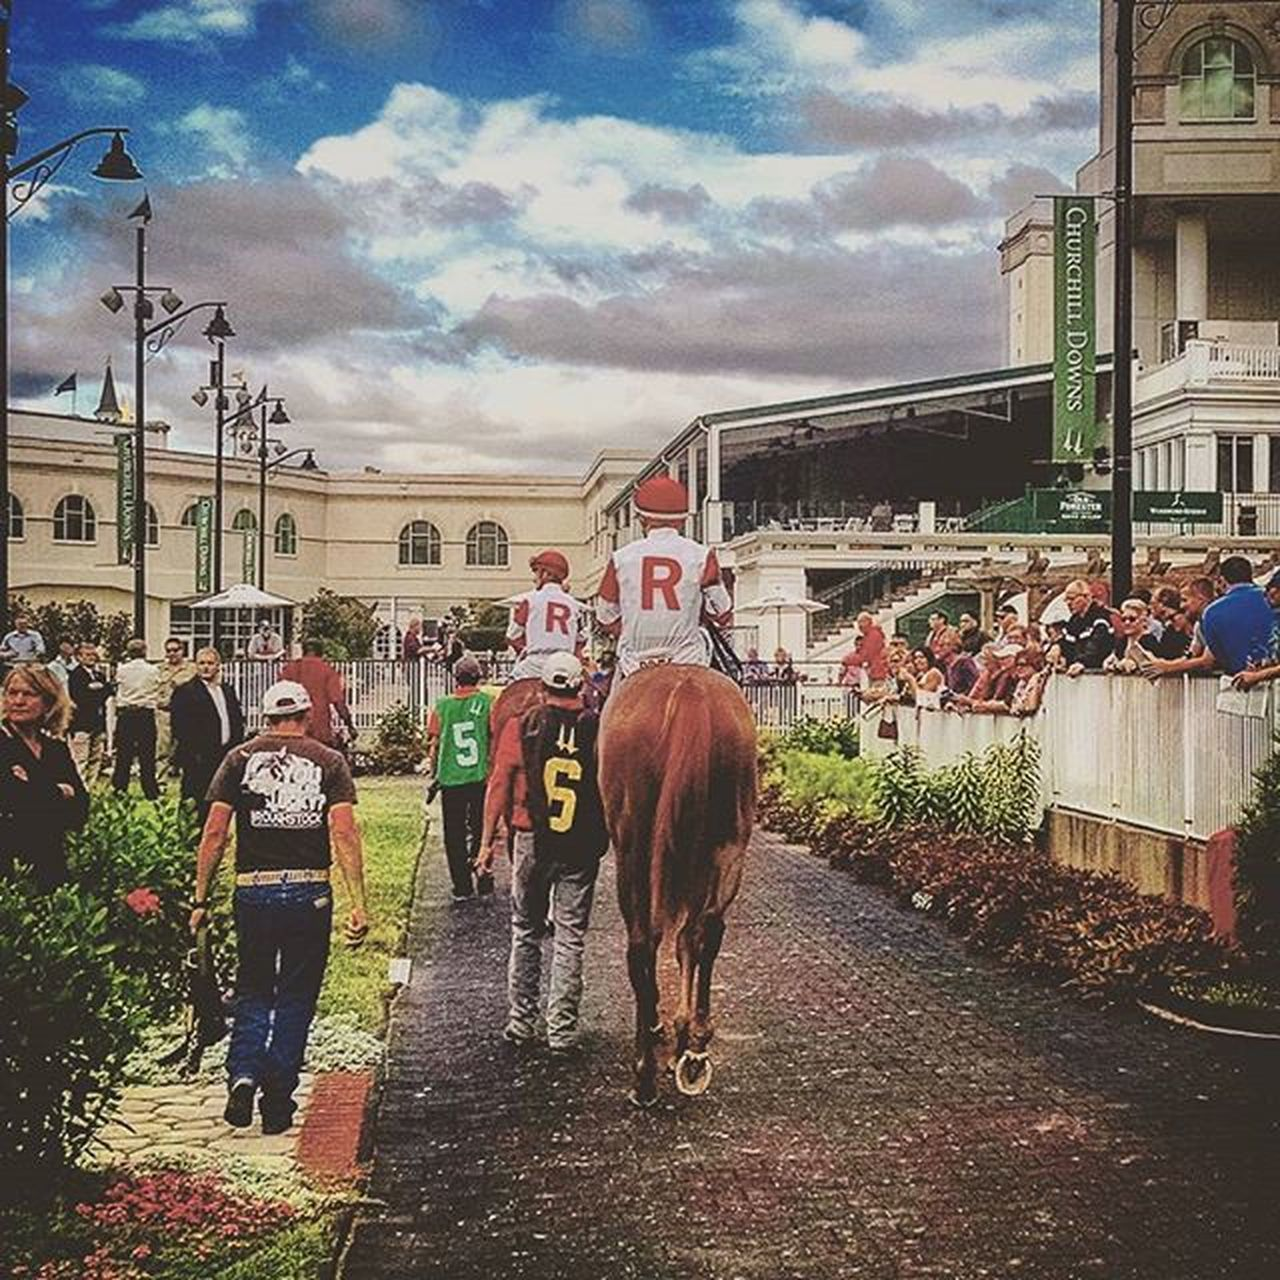 Gotta love that big red R! Churchhilldowns Ramseys RamseyFarm Thoroghbred Thoroghbredracing Selfie Fall Autumn Louisville Kentucky  Selfies